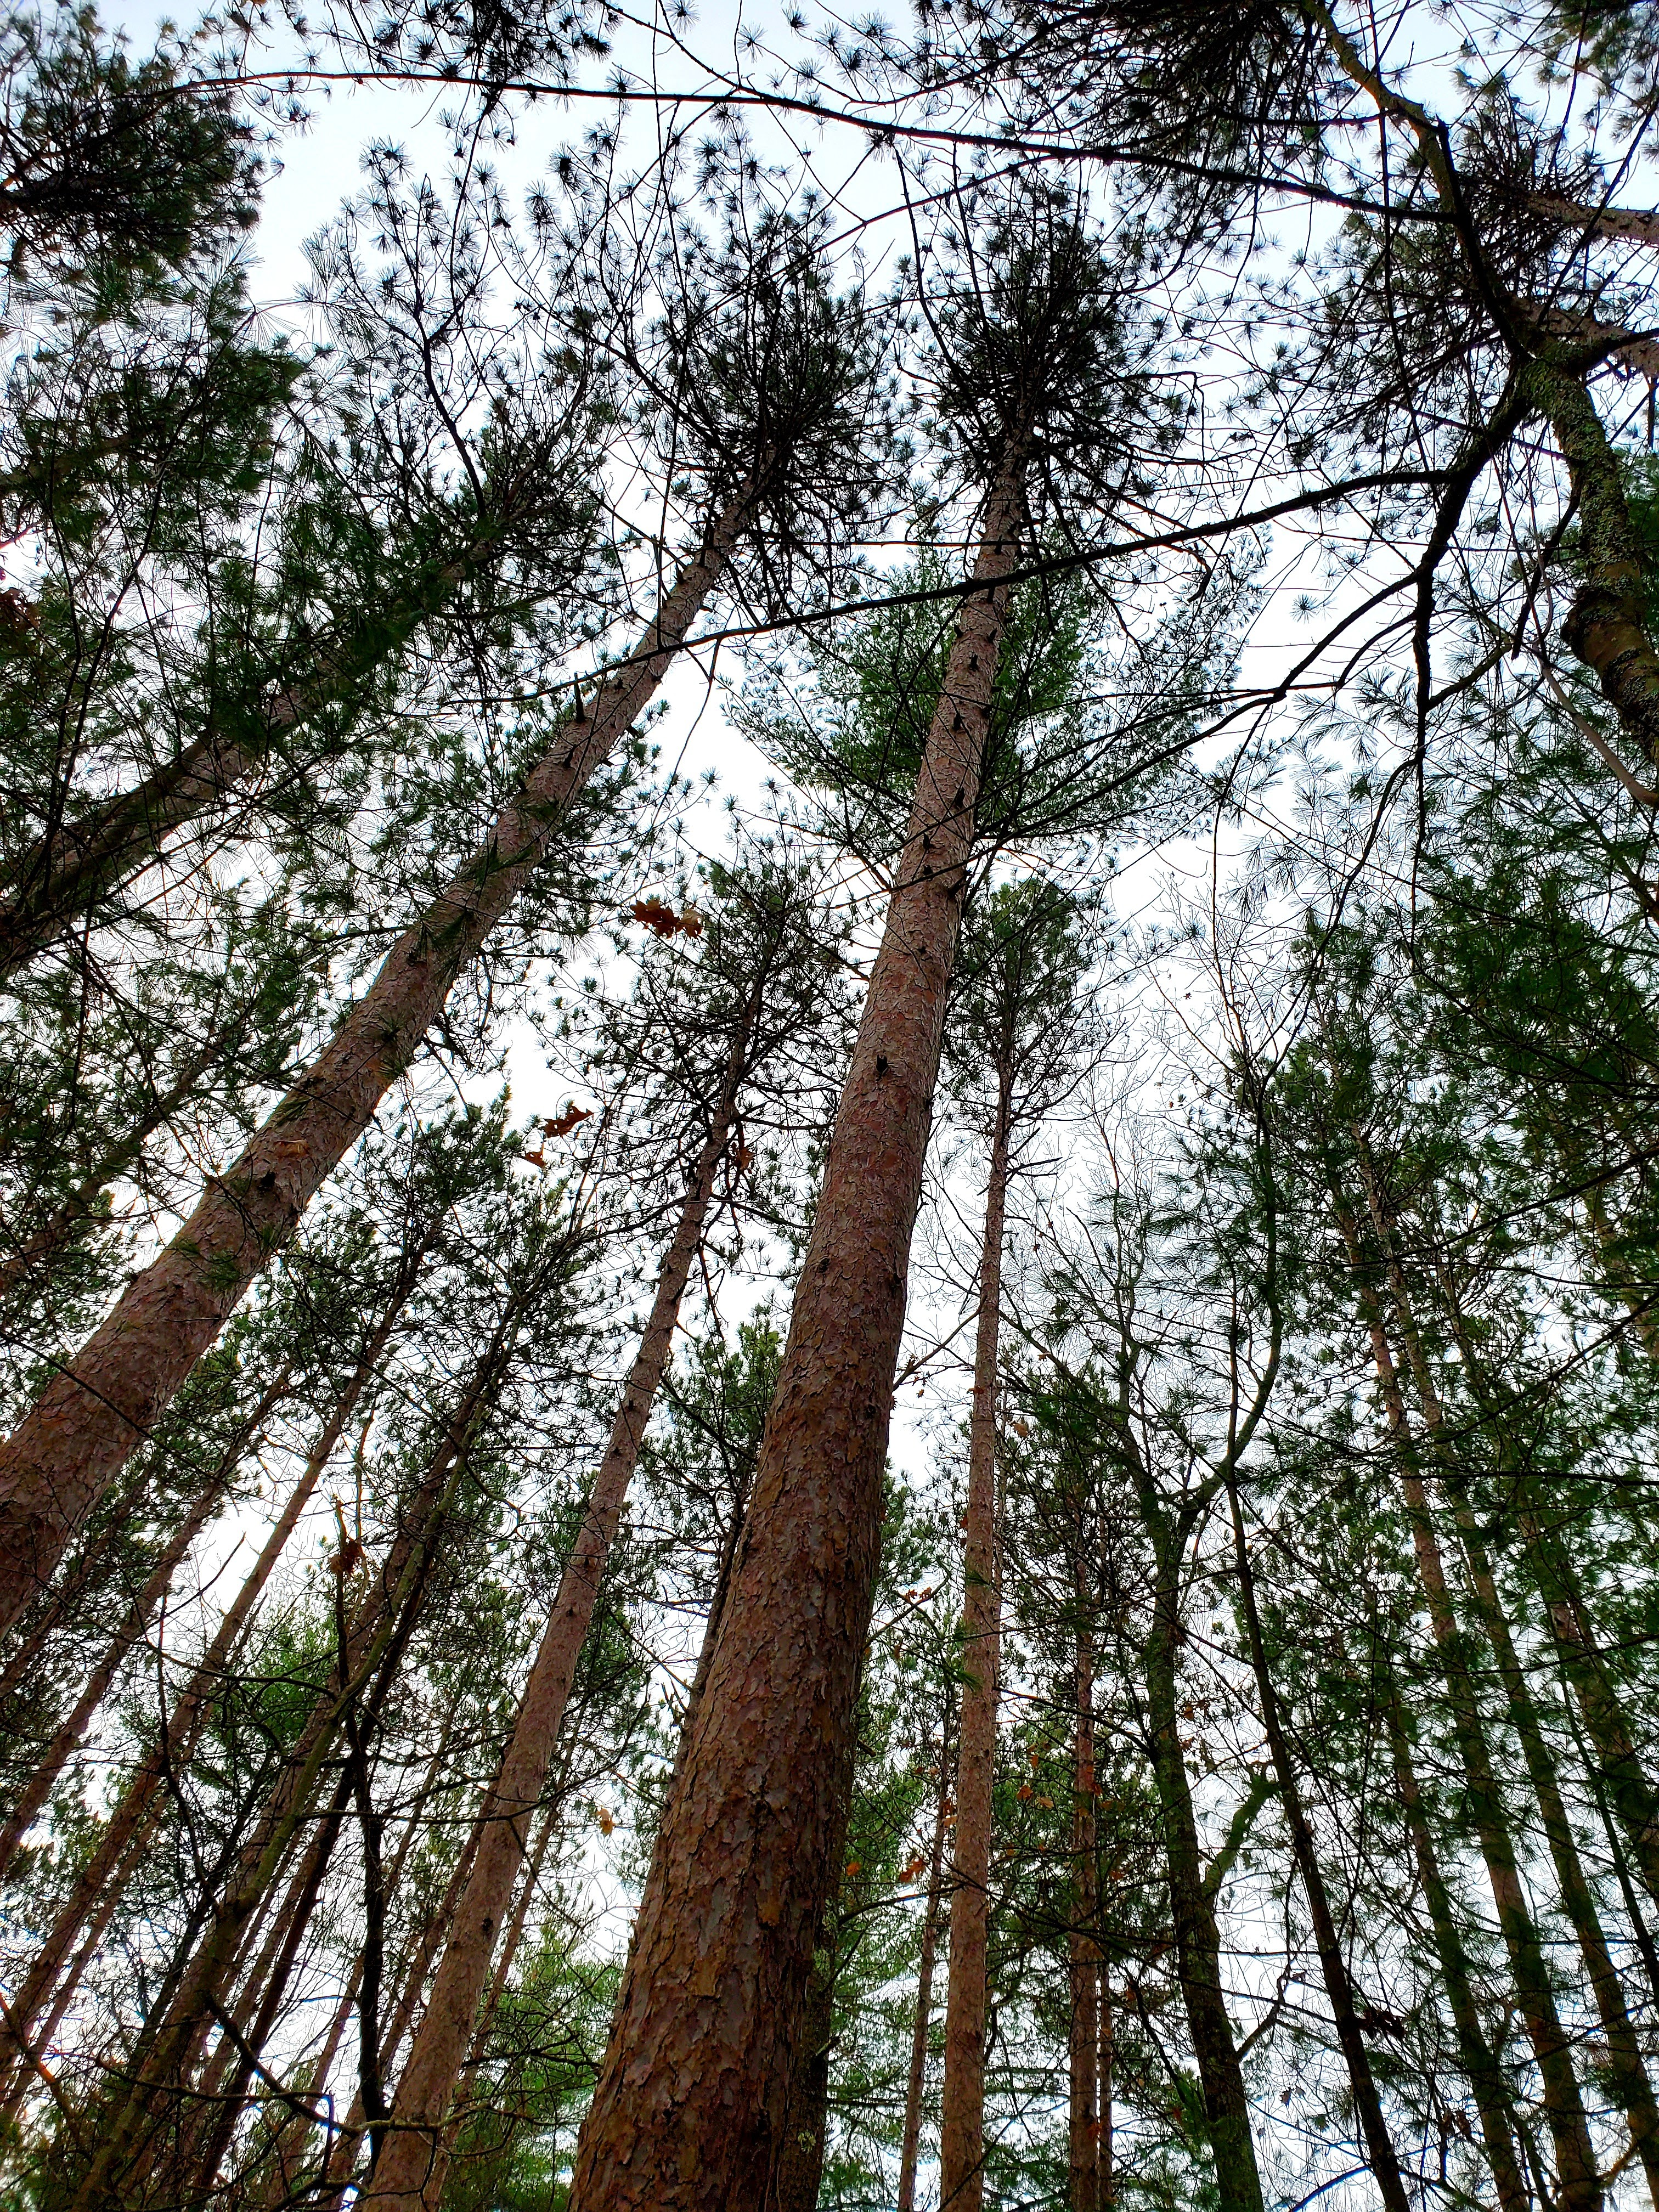 surrounded by tall pines